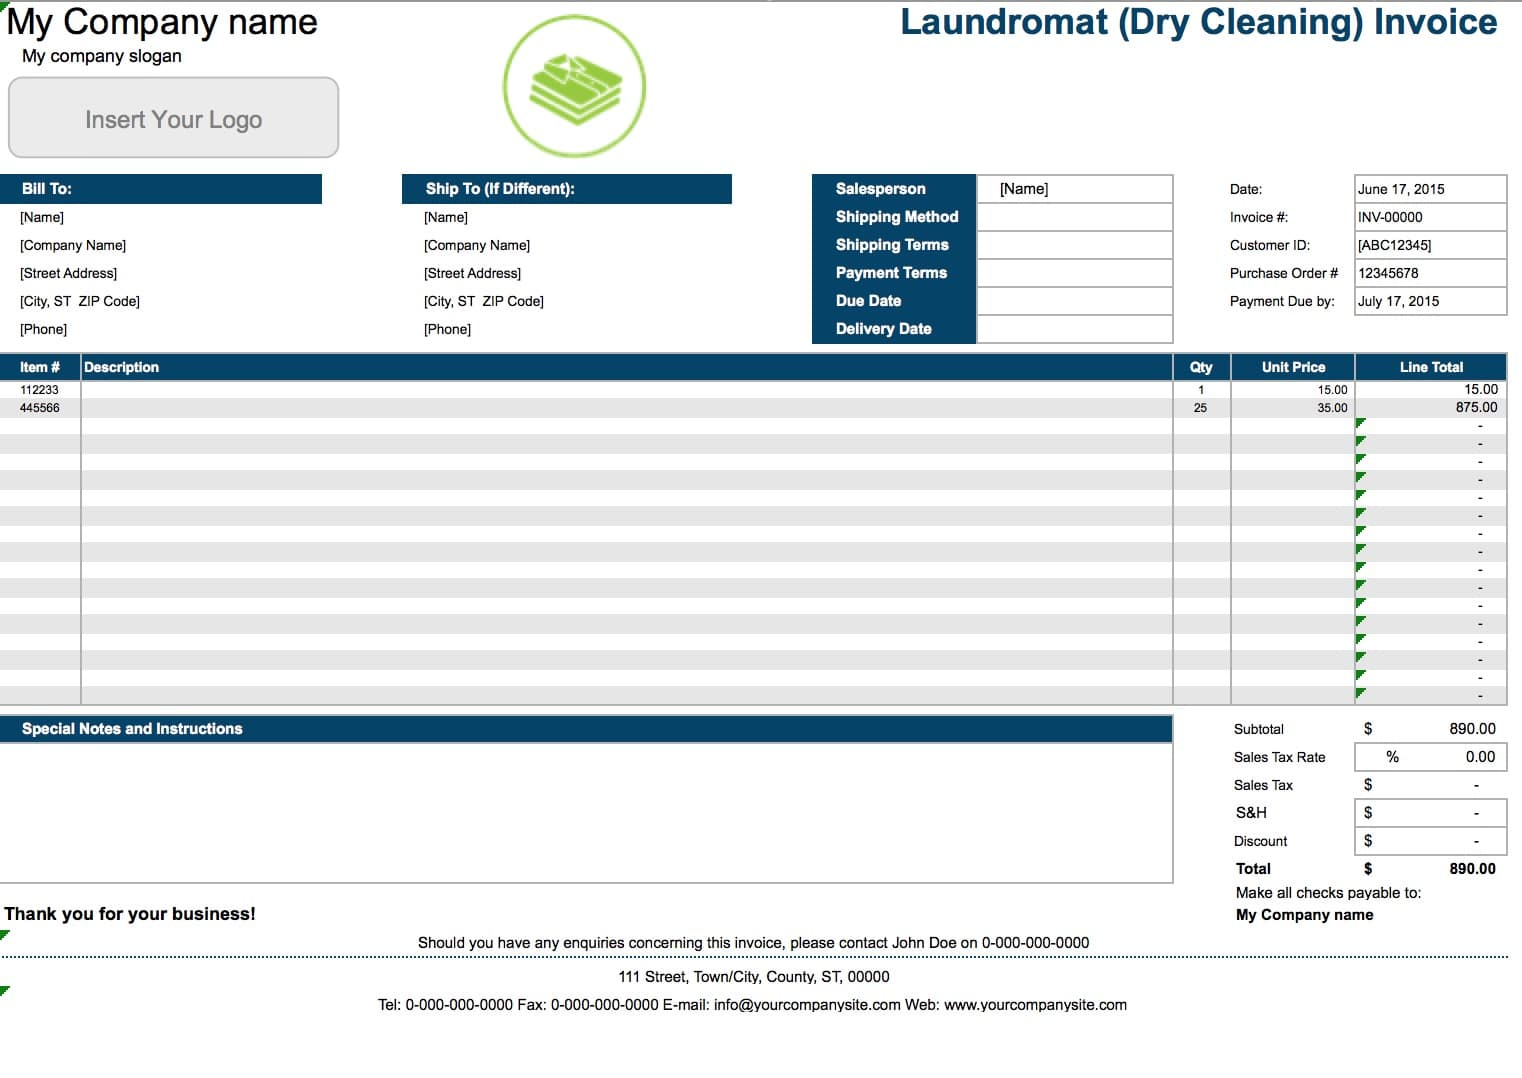 Free Laundromat (Dry Cleaning) Invoice Template | Excel | PDF | Word (.doc)  Bill Book Template